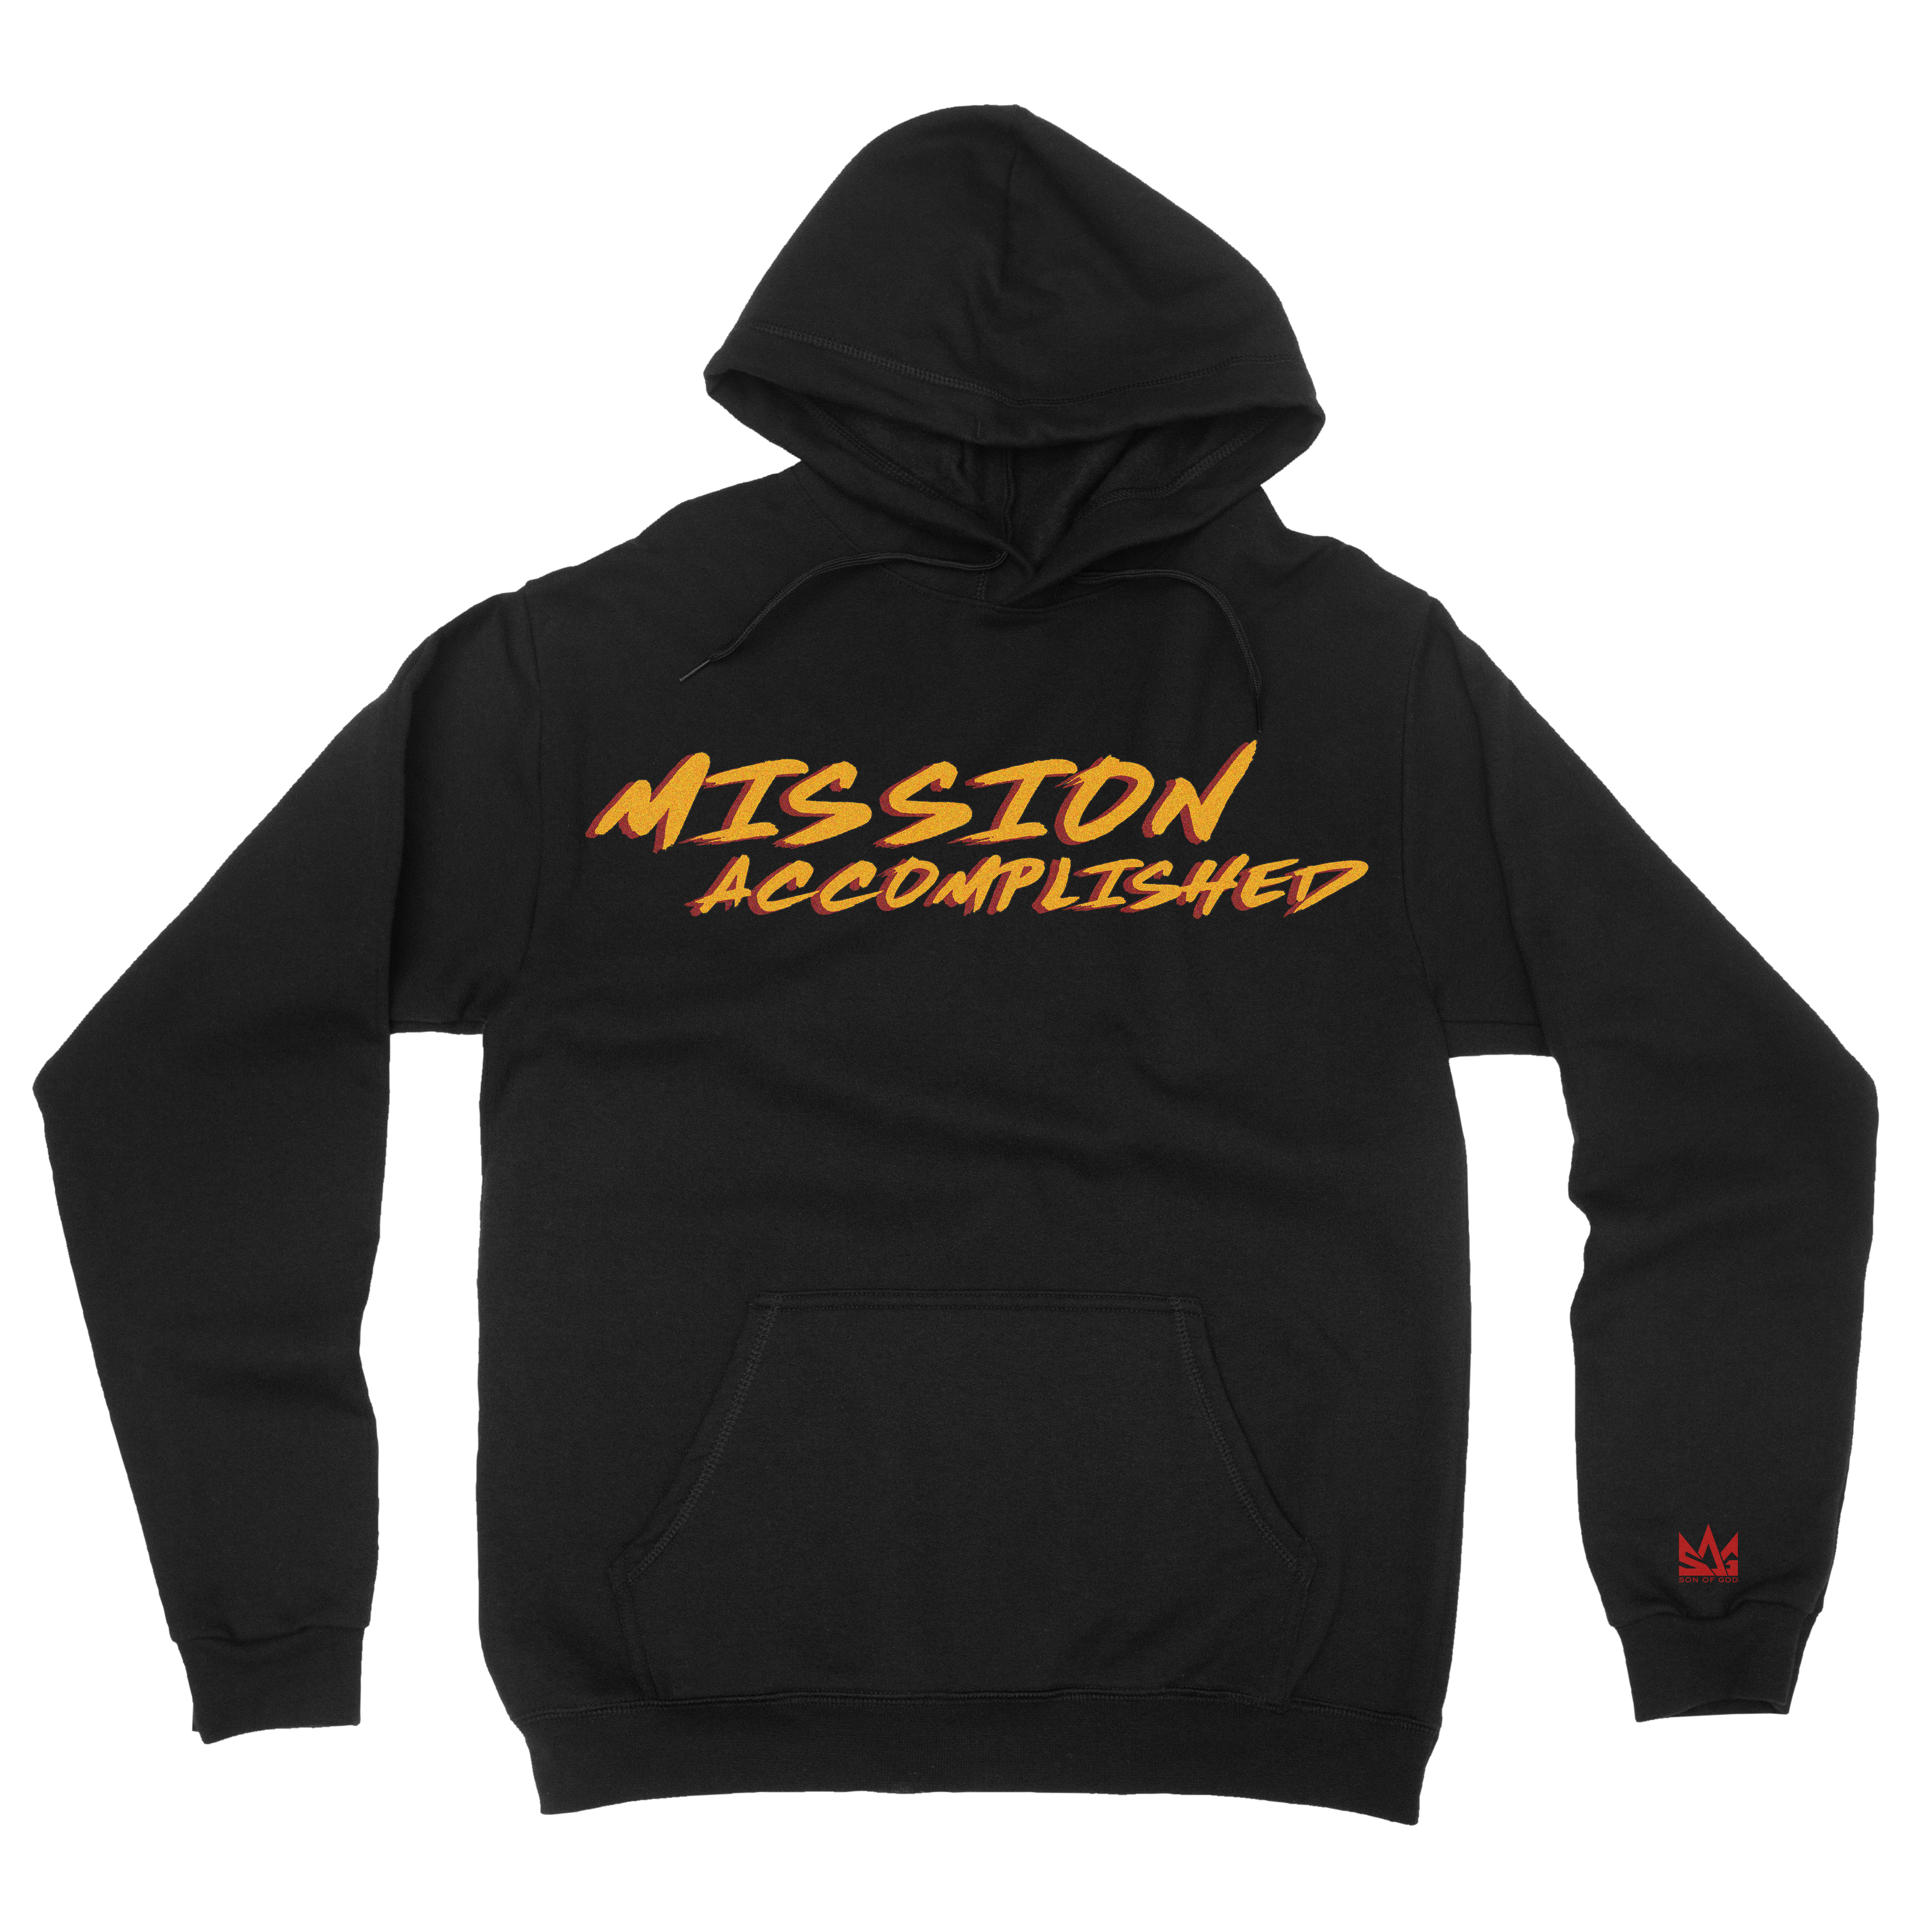 Mission accomplished hoodie front